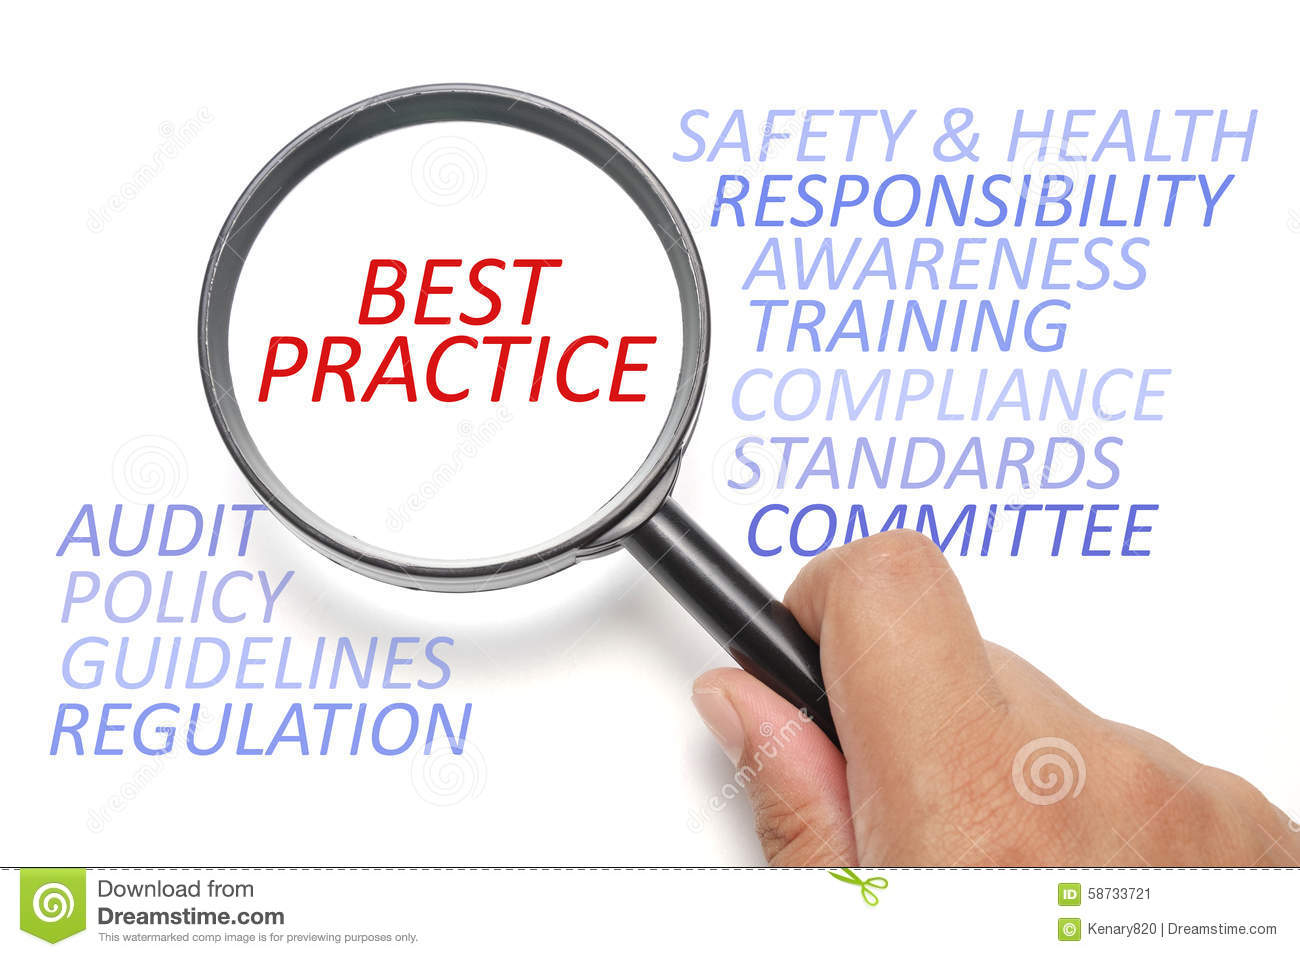 Safe Work Practices and Safe Job Procedures